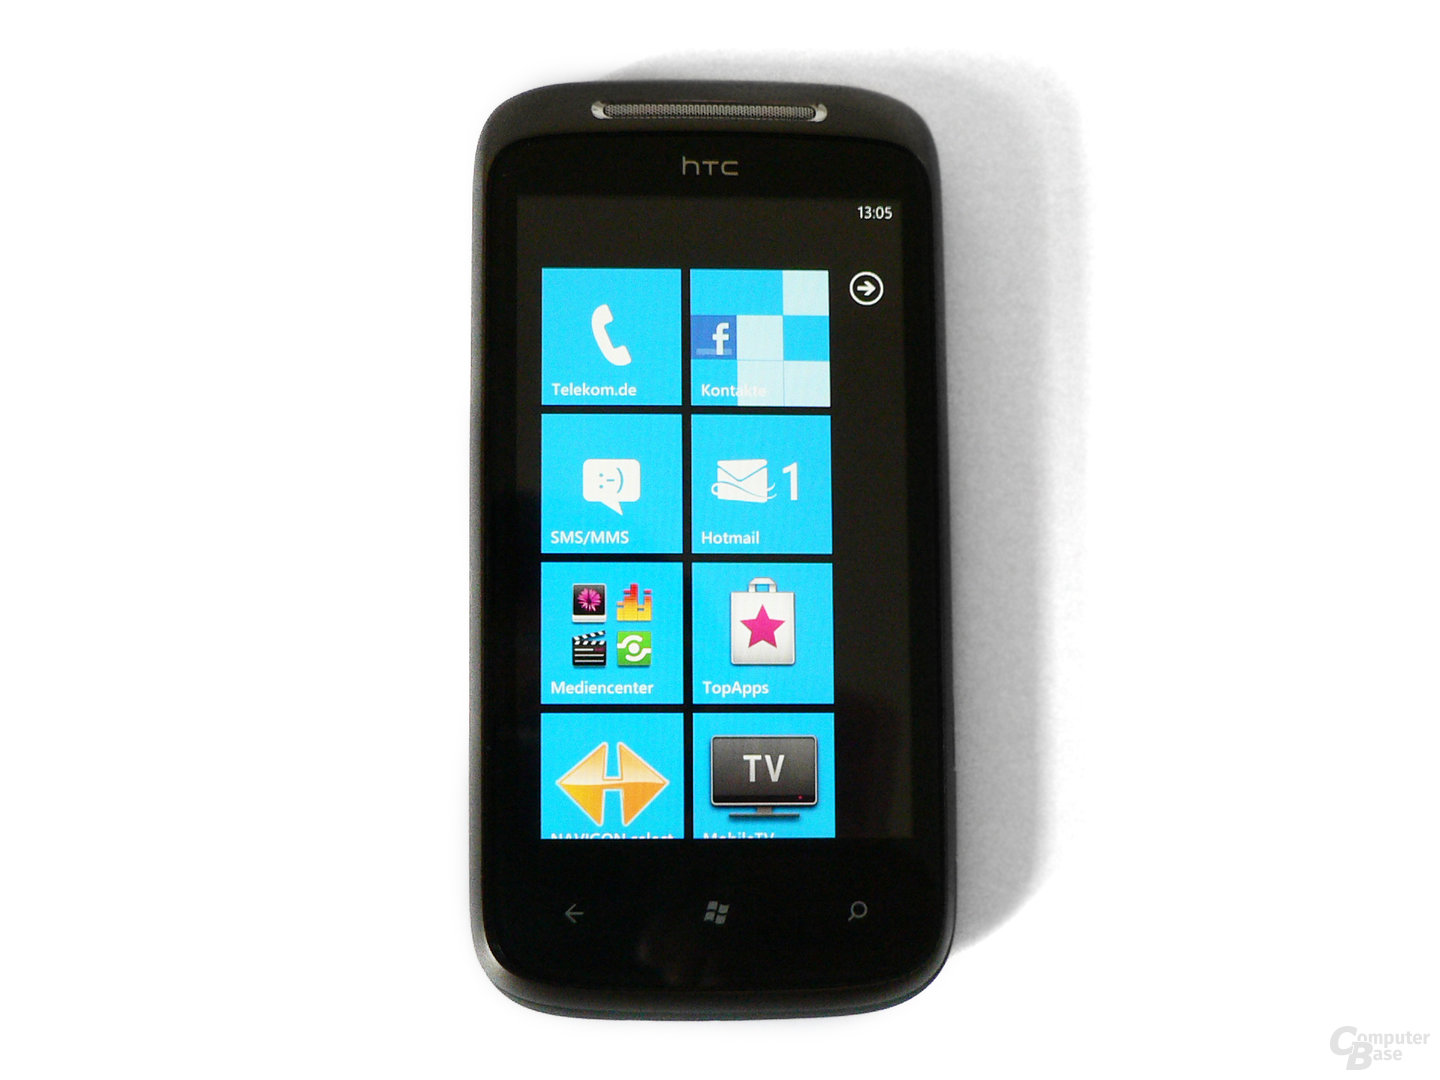 Windows Phone 7 Homescreen auf dem HTC Mozart